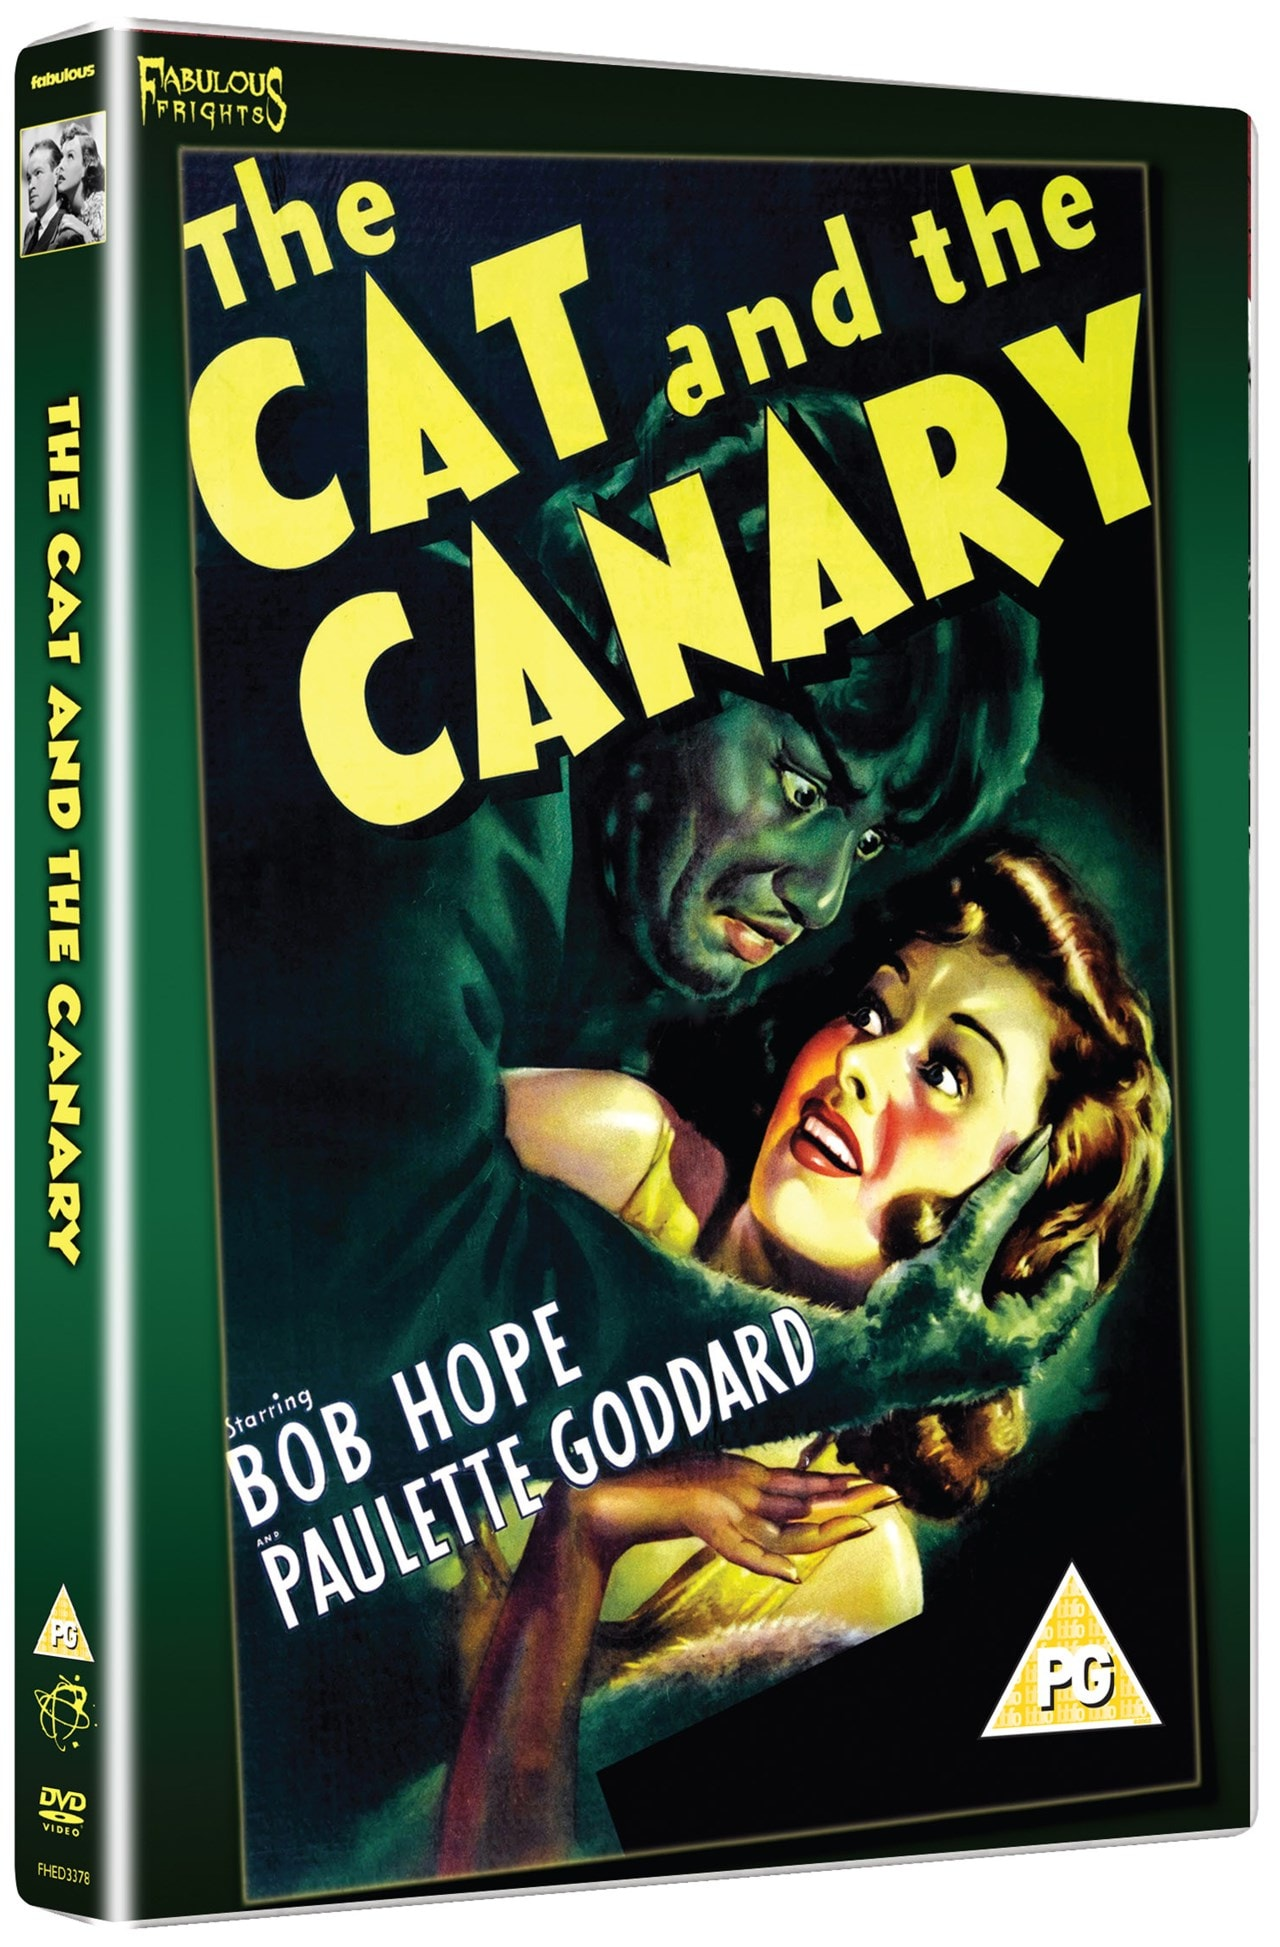 The Cat and the Canary - 2